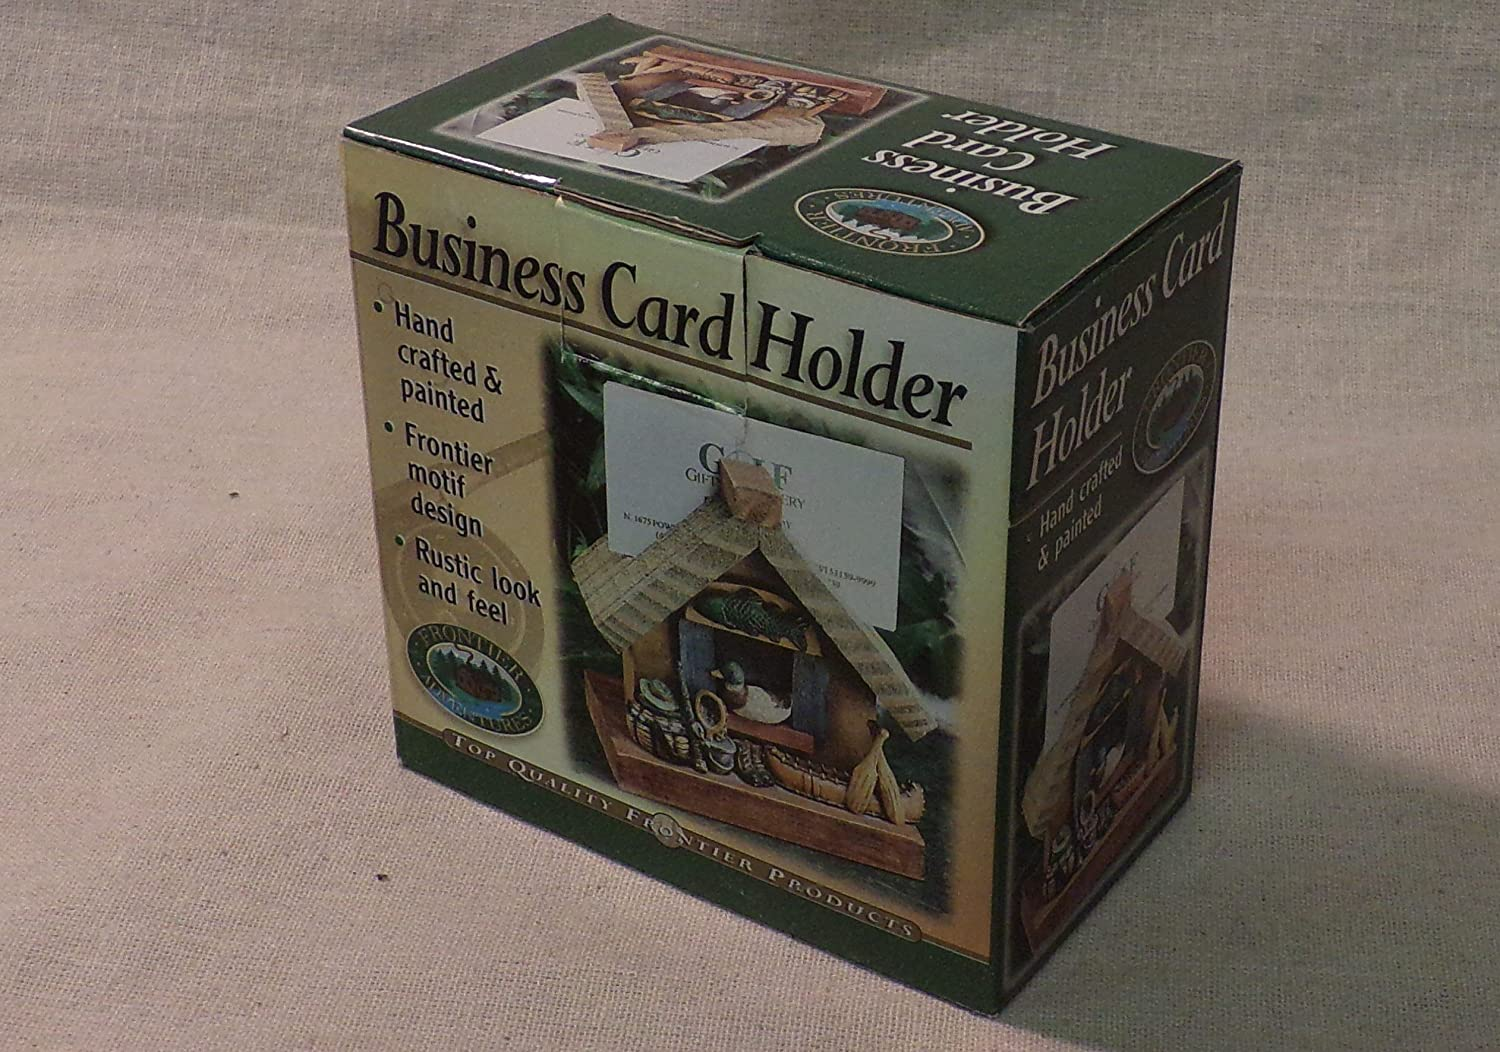 Amazon.com : Business Card Holder - Hunting and Fishing Theme ...